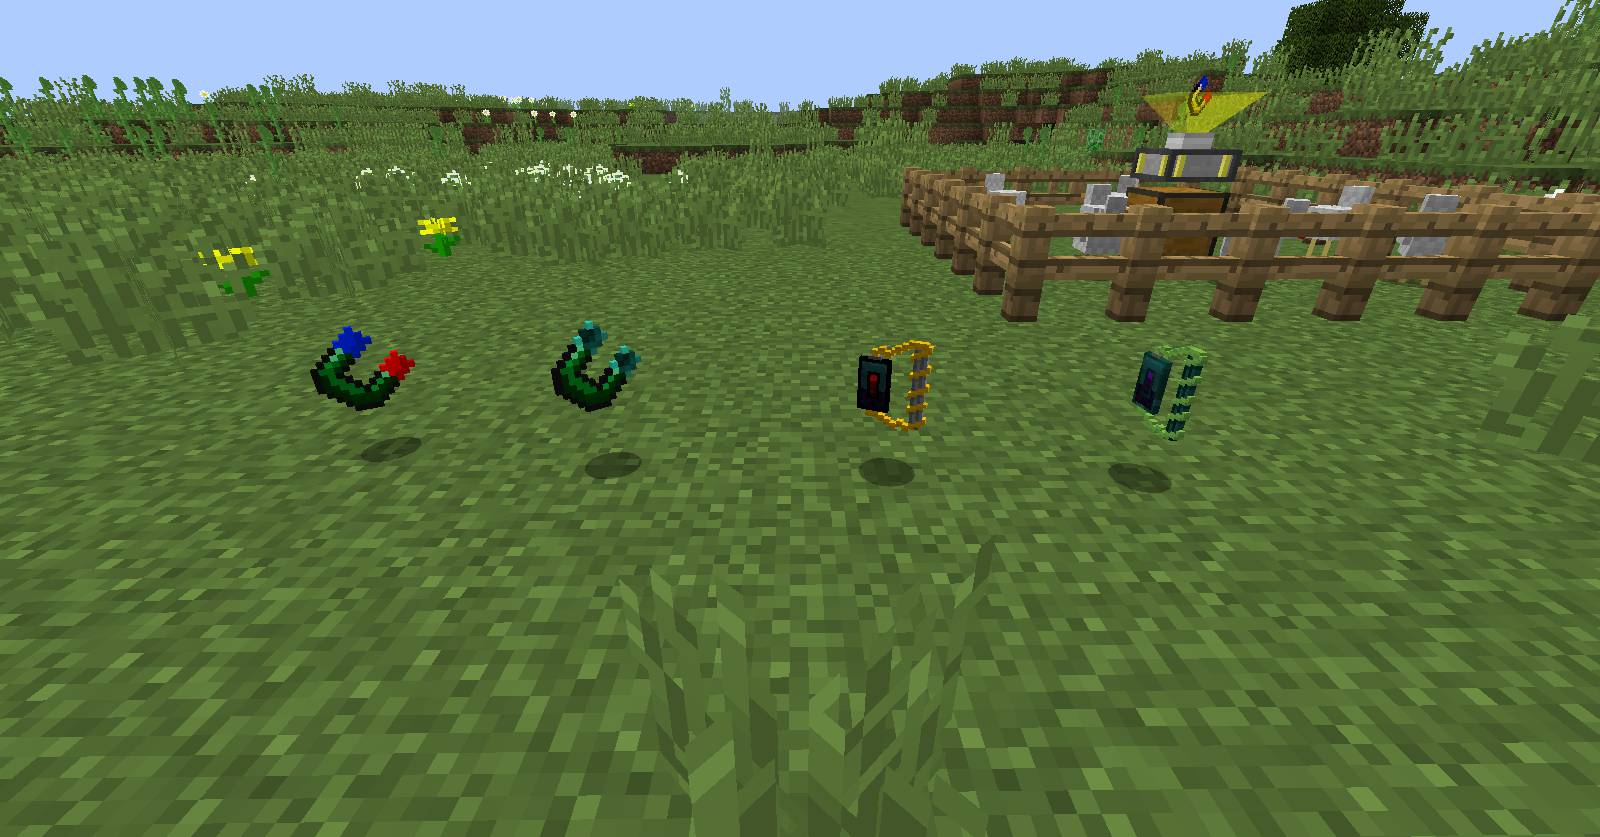 Tiered Magnets mod for minecraft 23